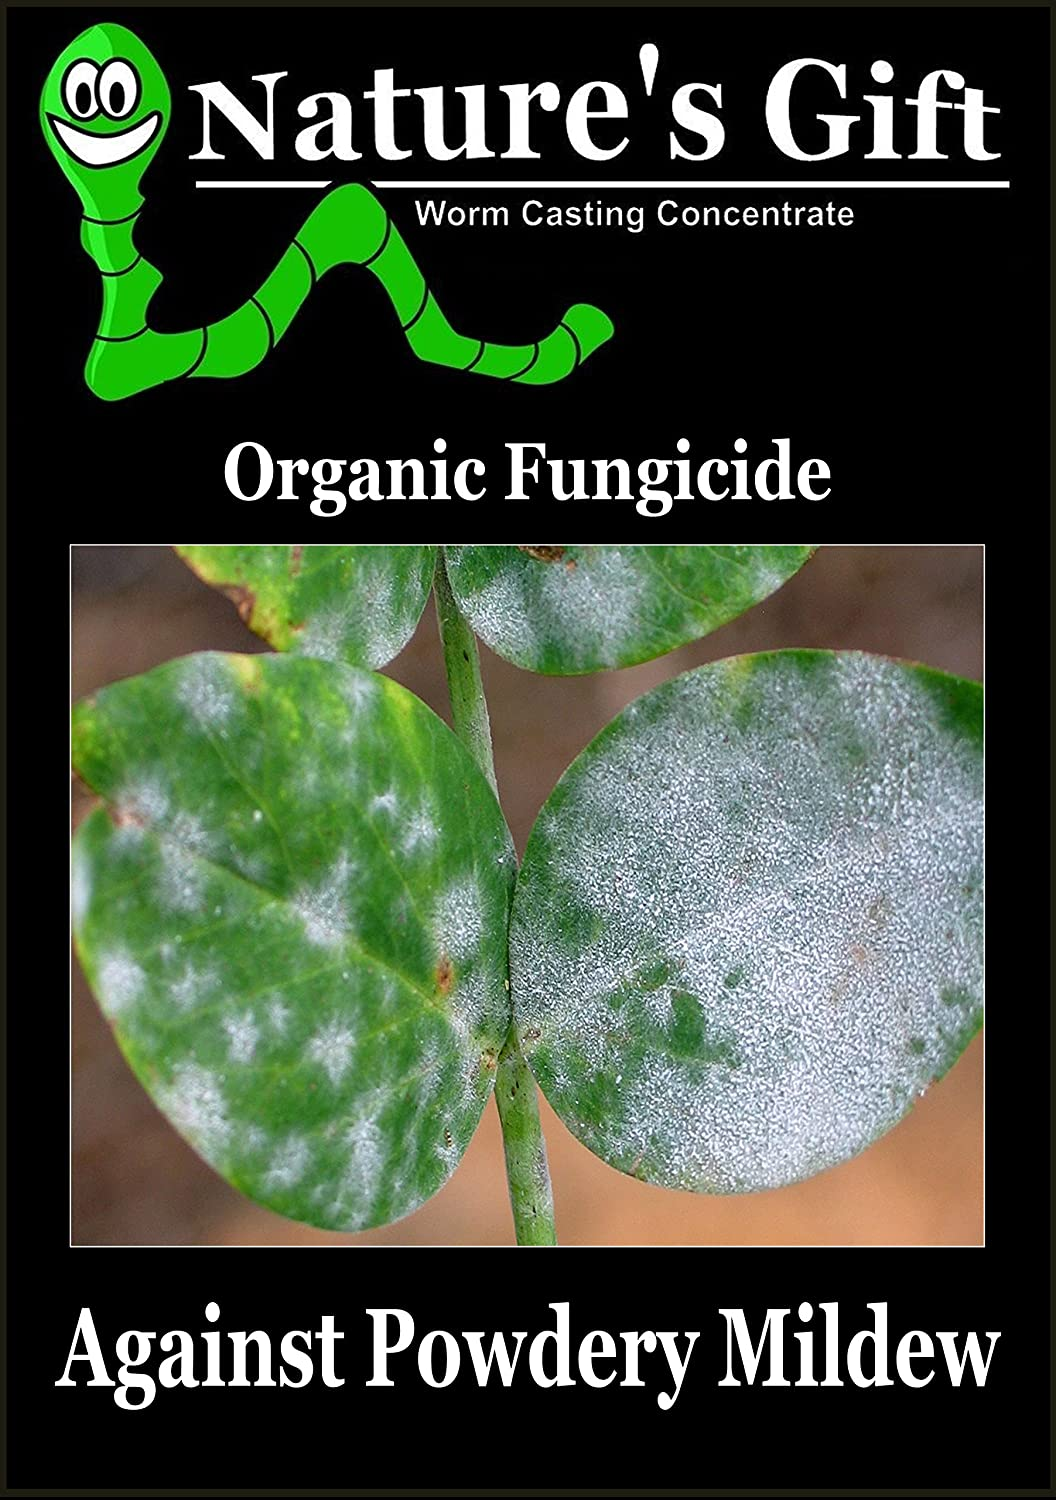 NATURE'S GIFT for POWDERY MILDEW - VERMICOMPOST LIQUID FUNGICIDE CONCENTRATE - MADE FROM VERMICAST, WORM CASTINGS,WORM CASTS,WORM HUMUS,WORM MANURE,WORM POO,WORM POOH,WORM POOP,WORM TEA - 100% ORGANIC (1 LITRE) E-COCO PRODUCTS UK